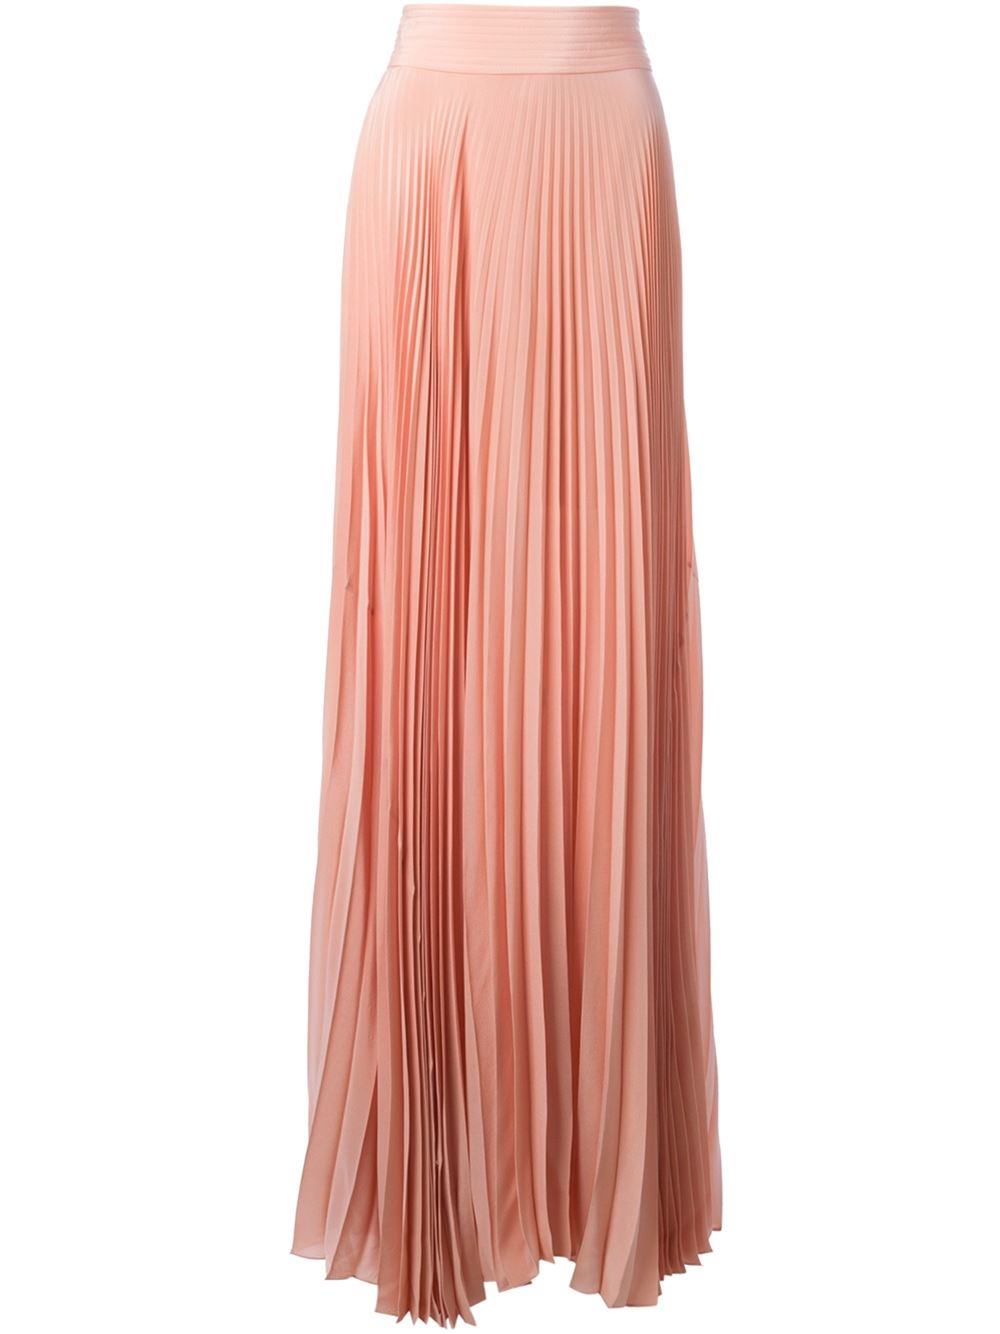 vionnet pleated skirt in pink lyst